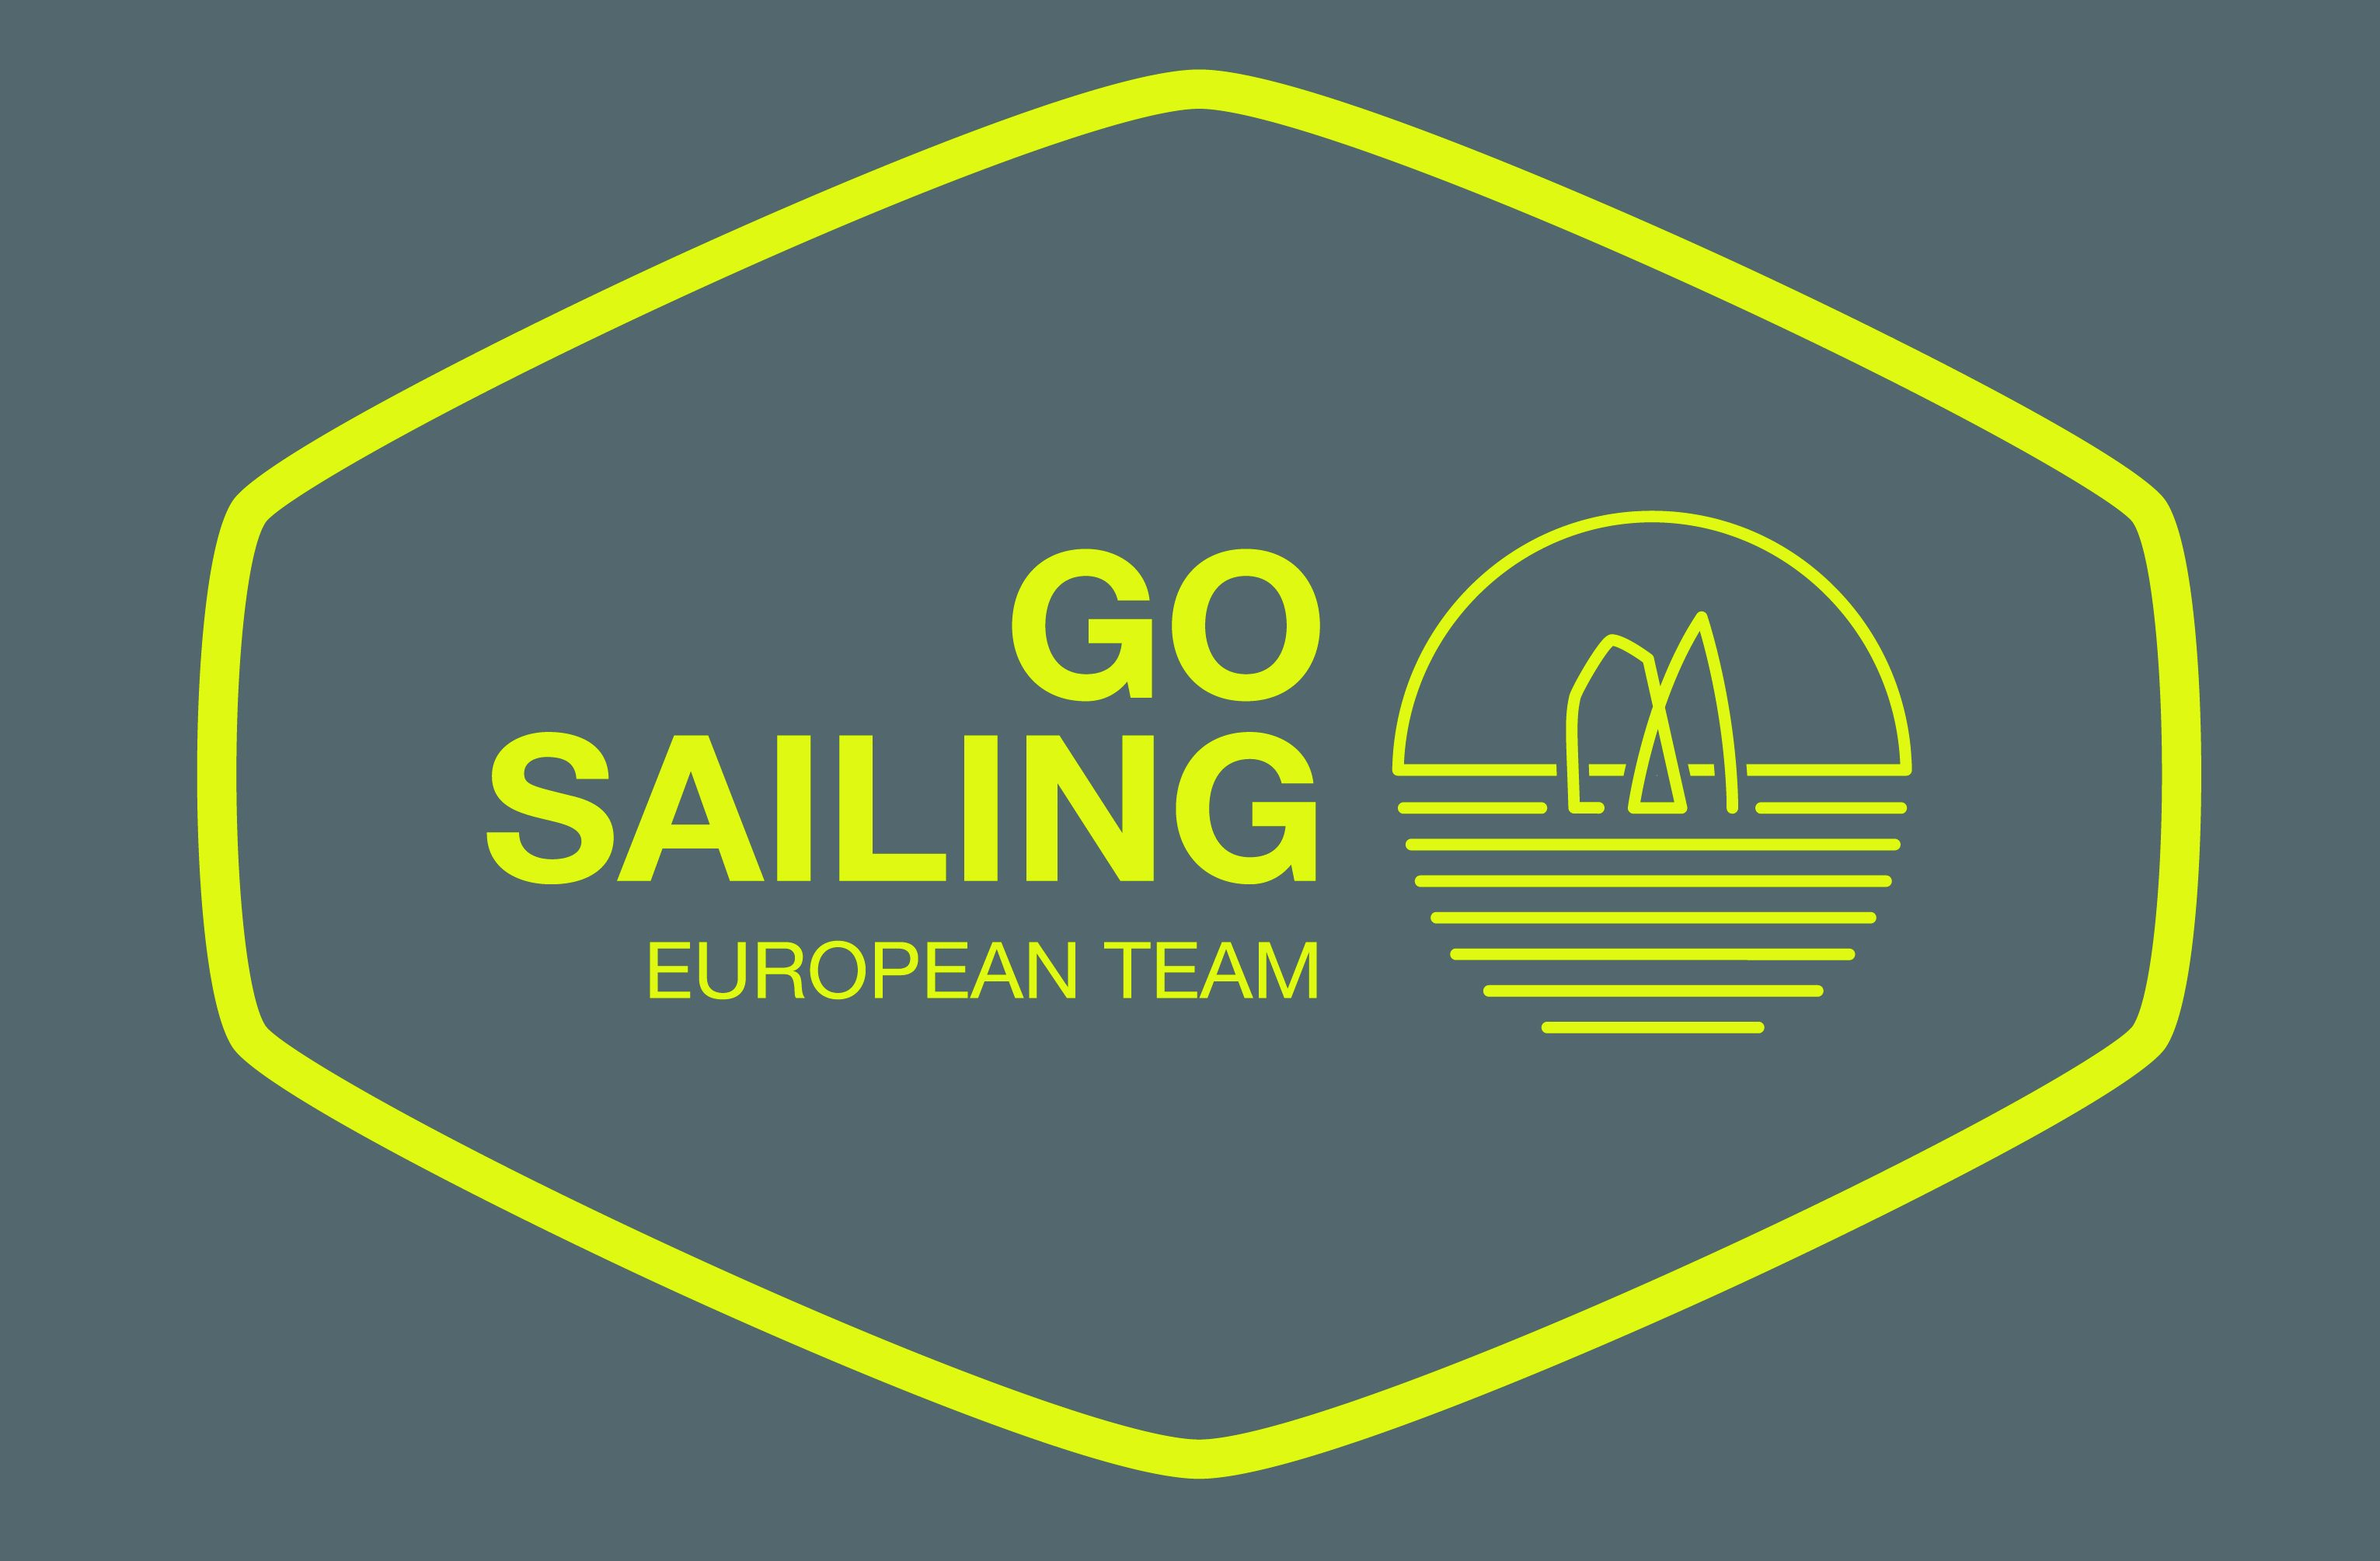 Go Sailing European Team